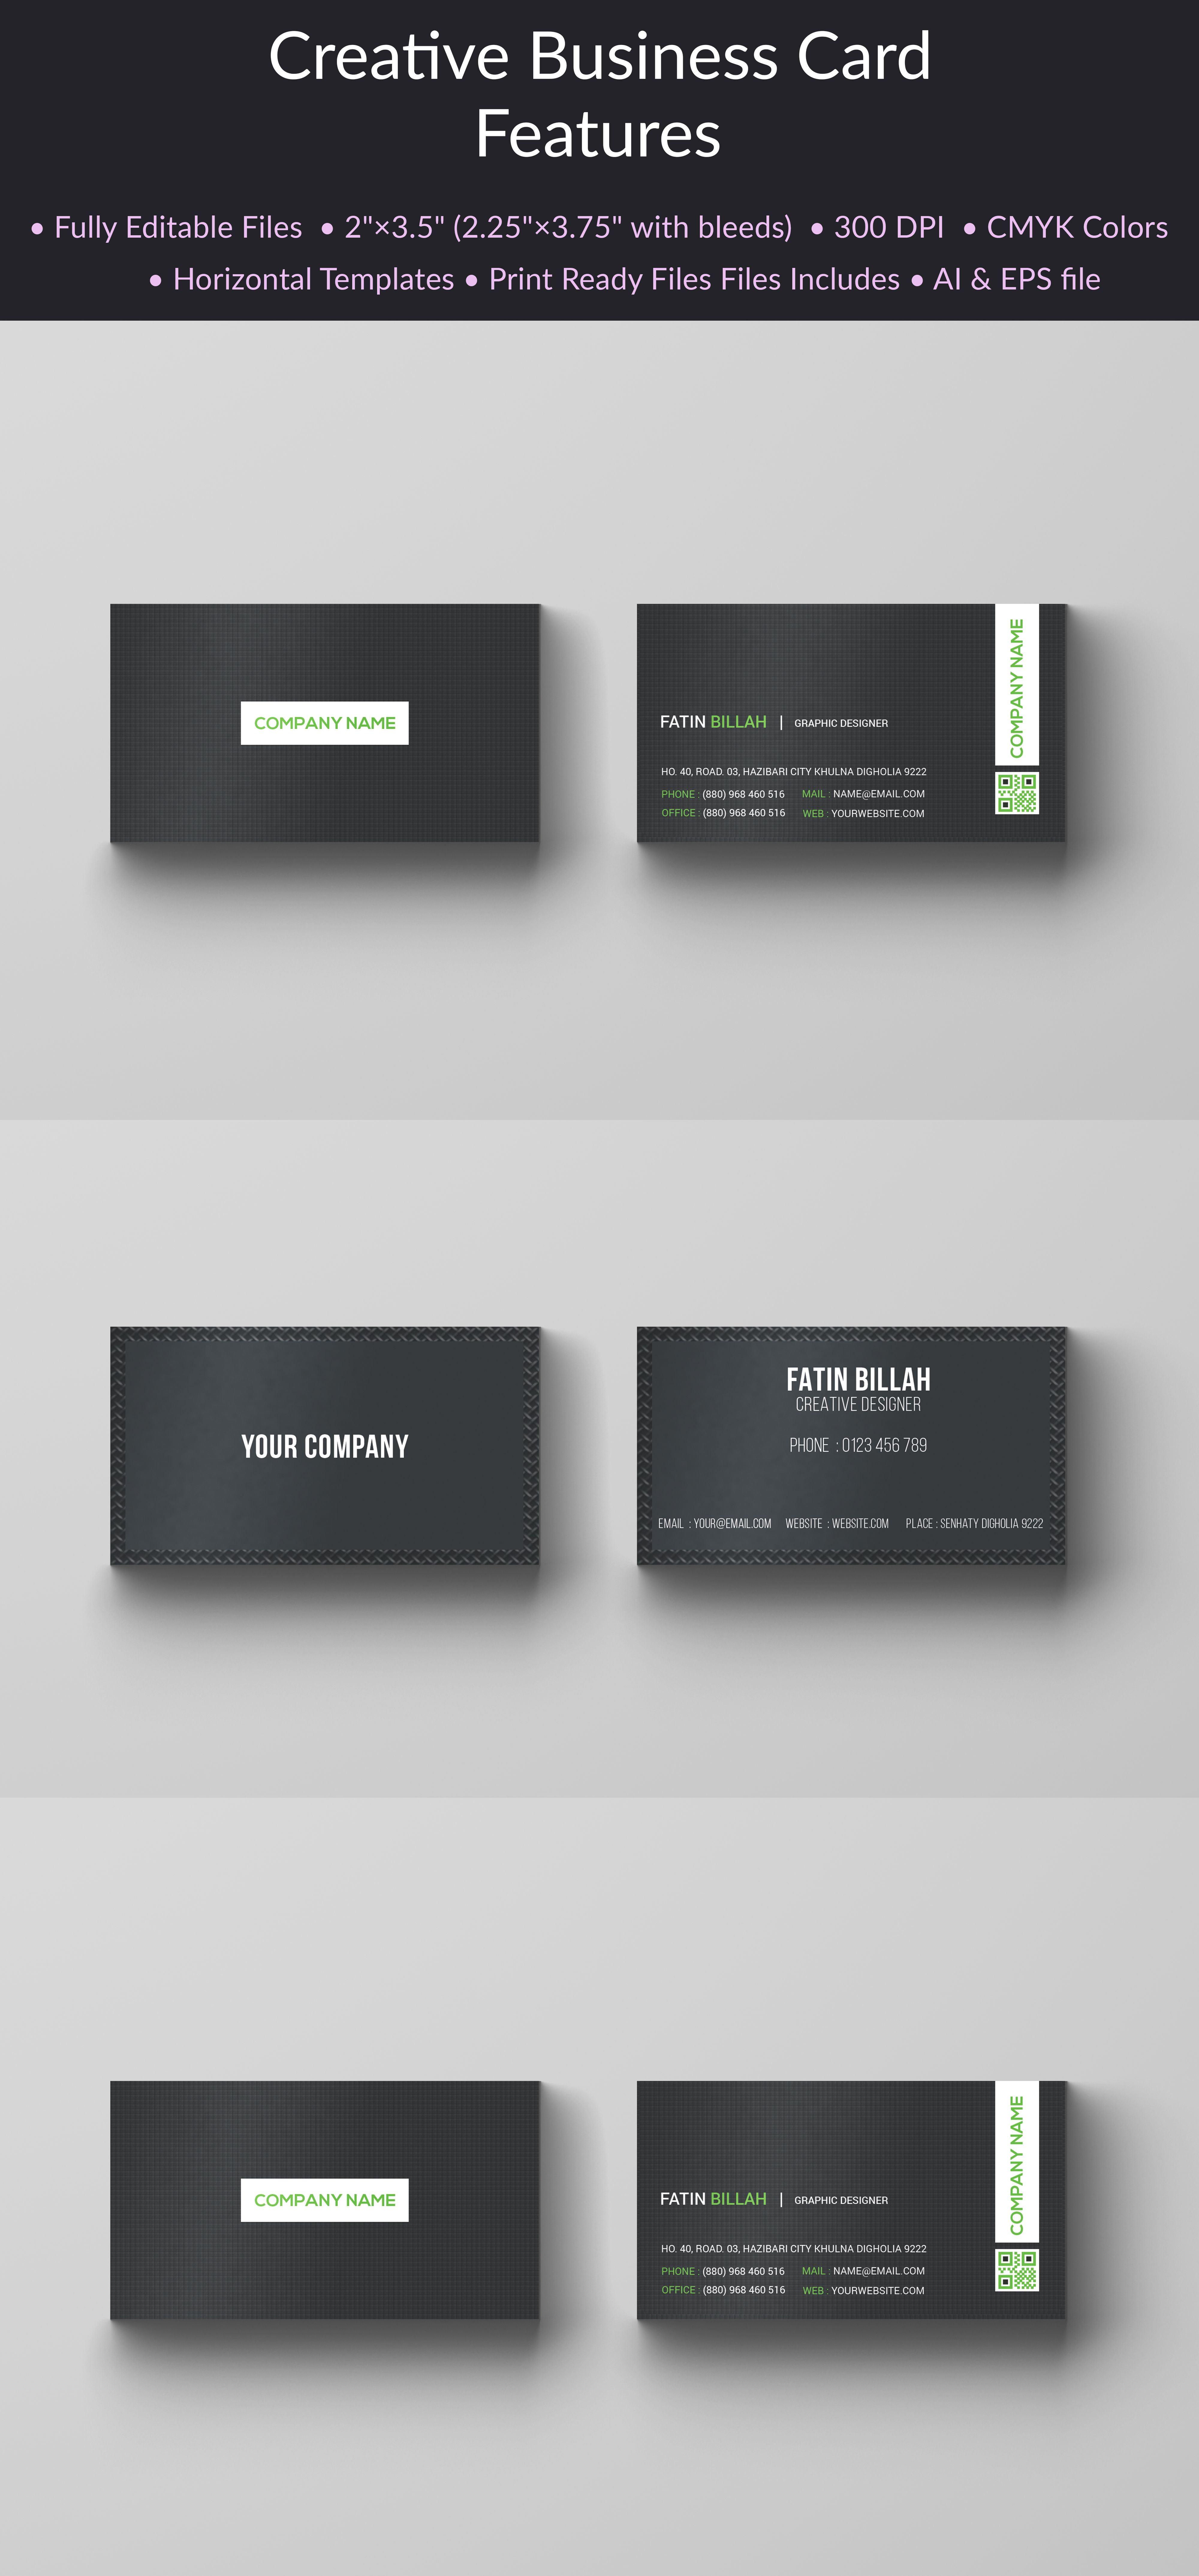 Fatin Billah I Will Design Excellent Business Card Within 24 Hour For 5 On Fiverr Com Business Cards Creative Business Cards Card Design